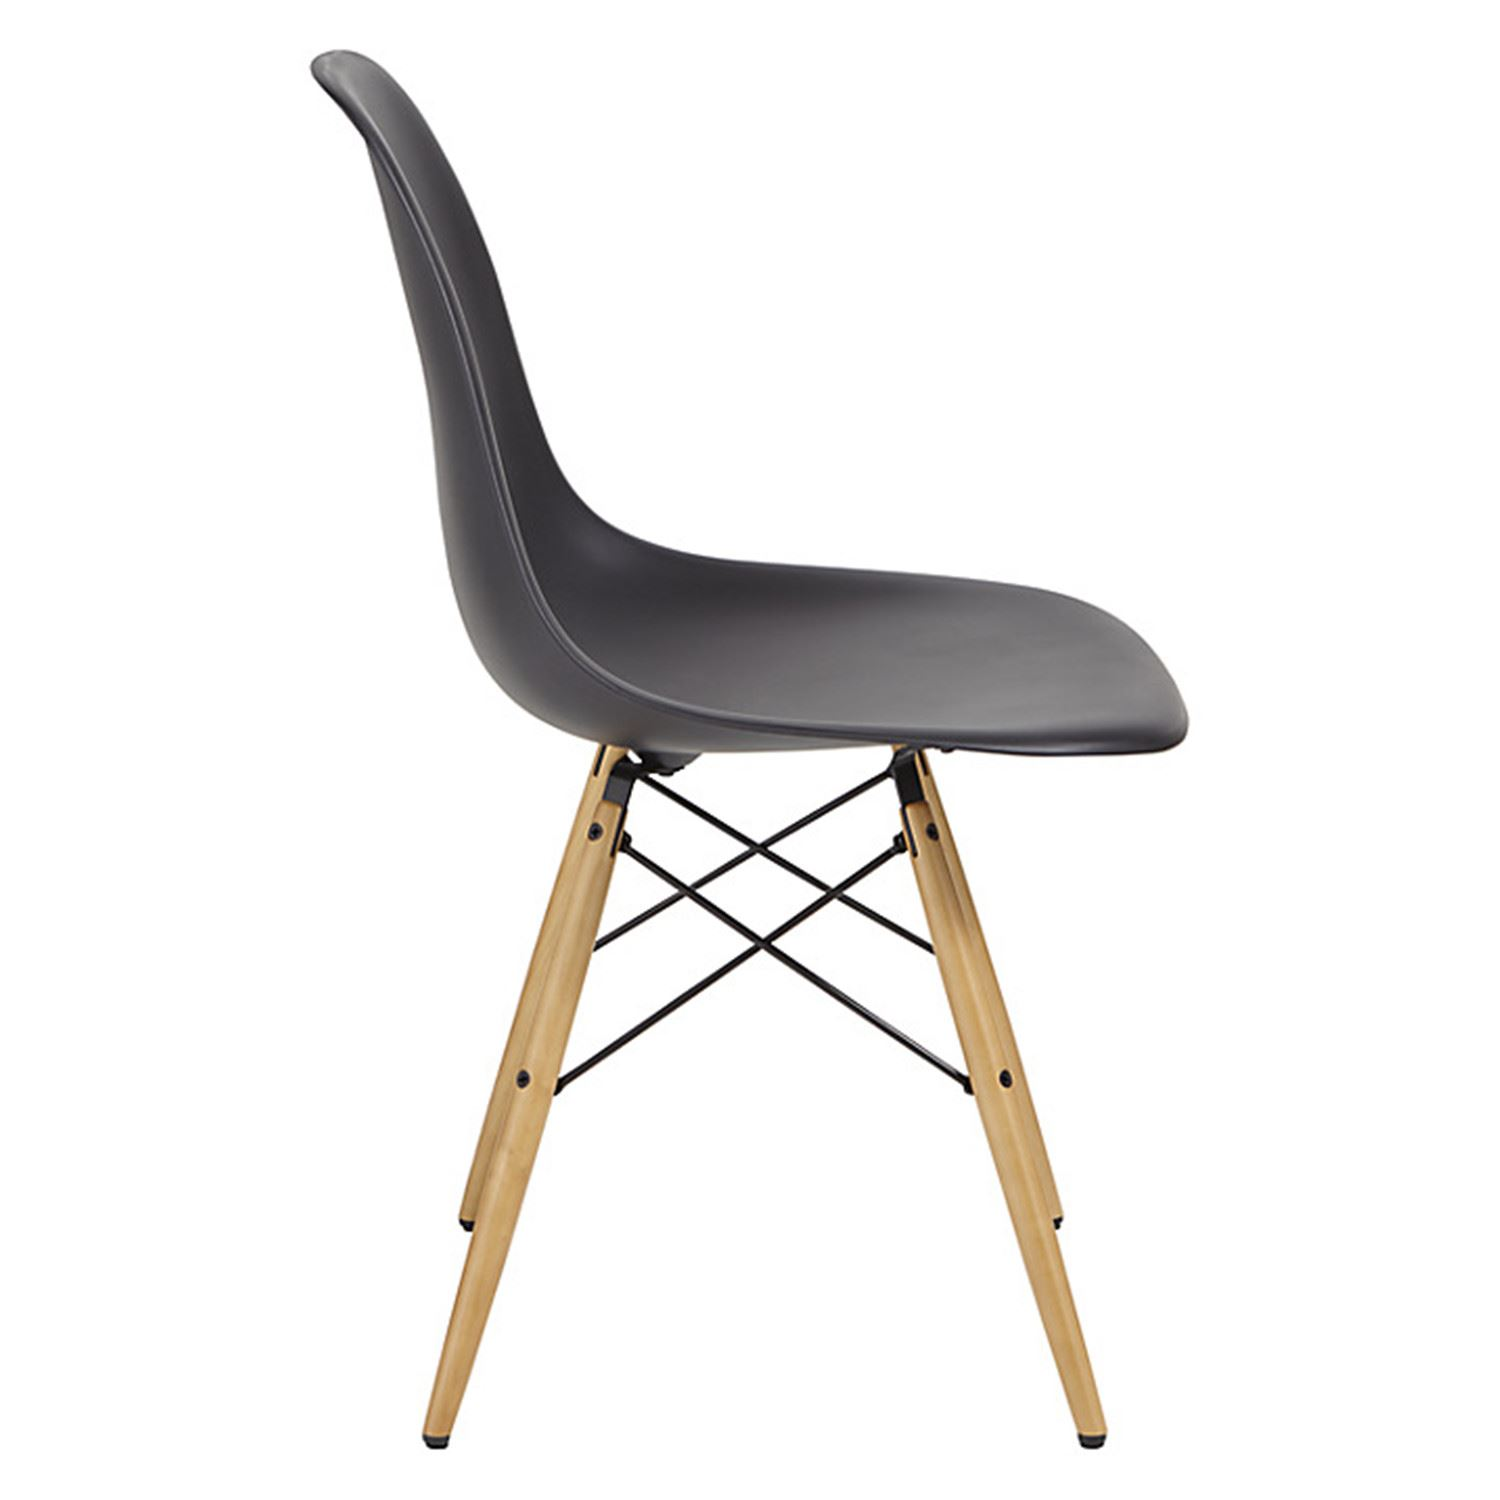 Set of 2 dsw dining chairs eames inspired eiffel wooden for Eames chair england